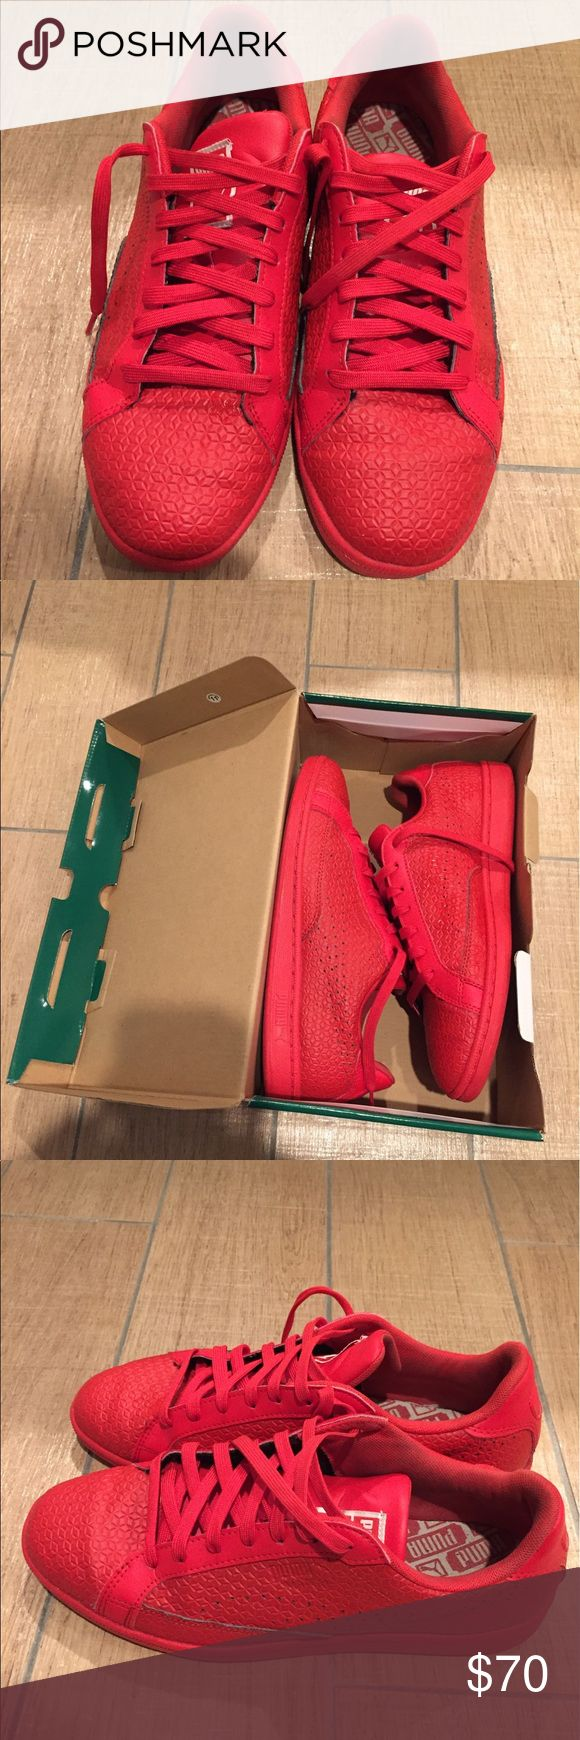 Puma sneakers - Men's 8.5 Red men's Puma sneakers with box. Size 8.5 Puma Shoes Sneakers